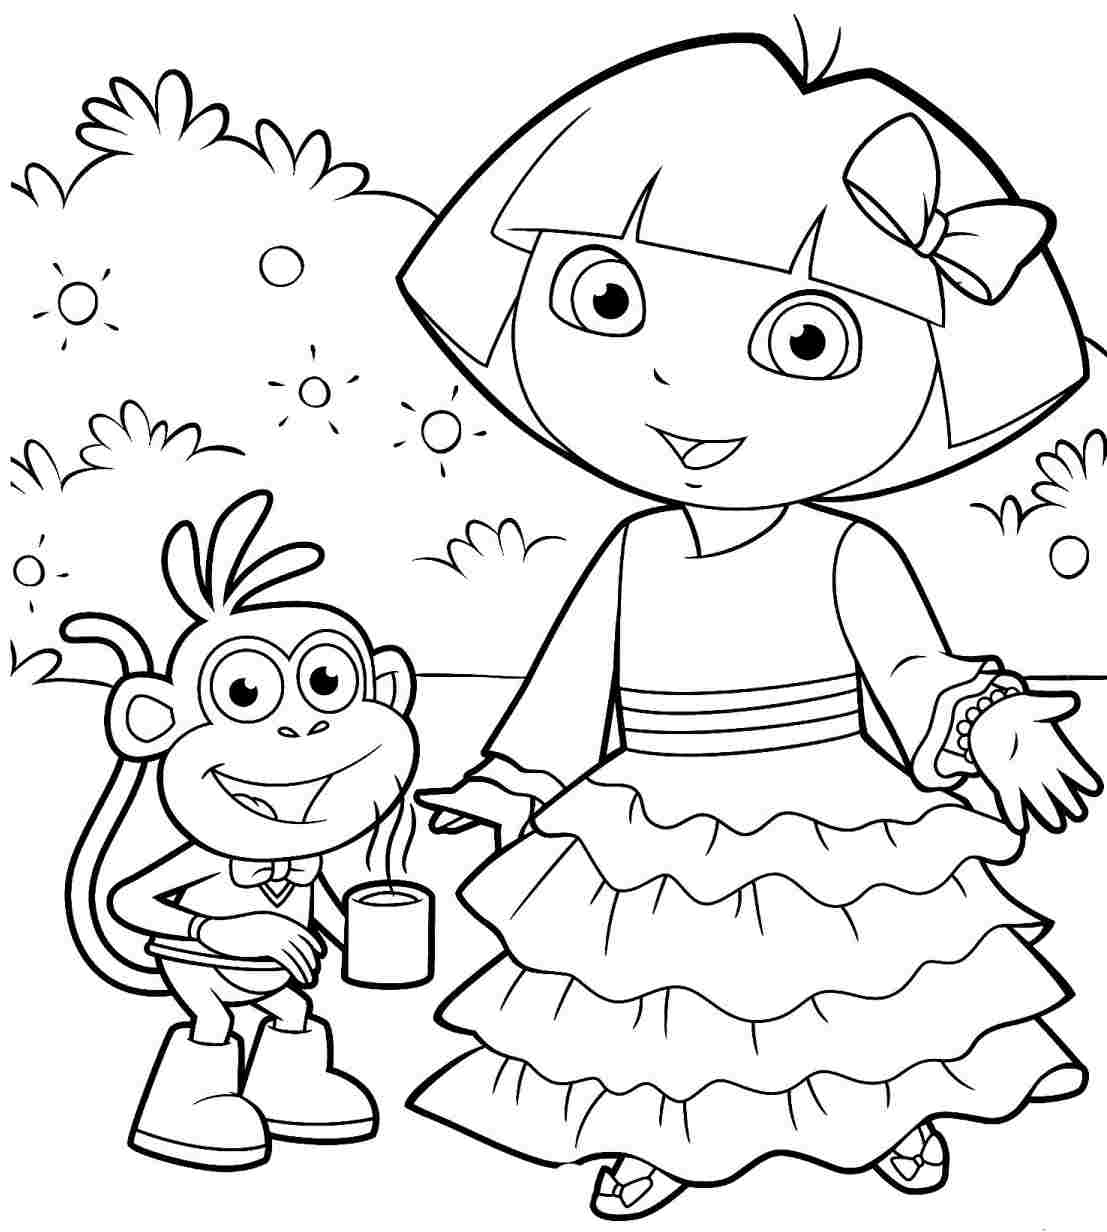 Dora Christmas Coloring pages #12 Printable Coloring Sheets